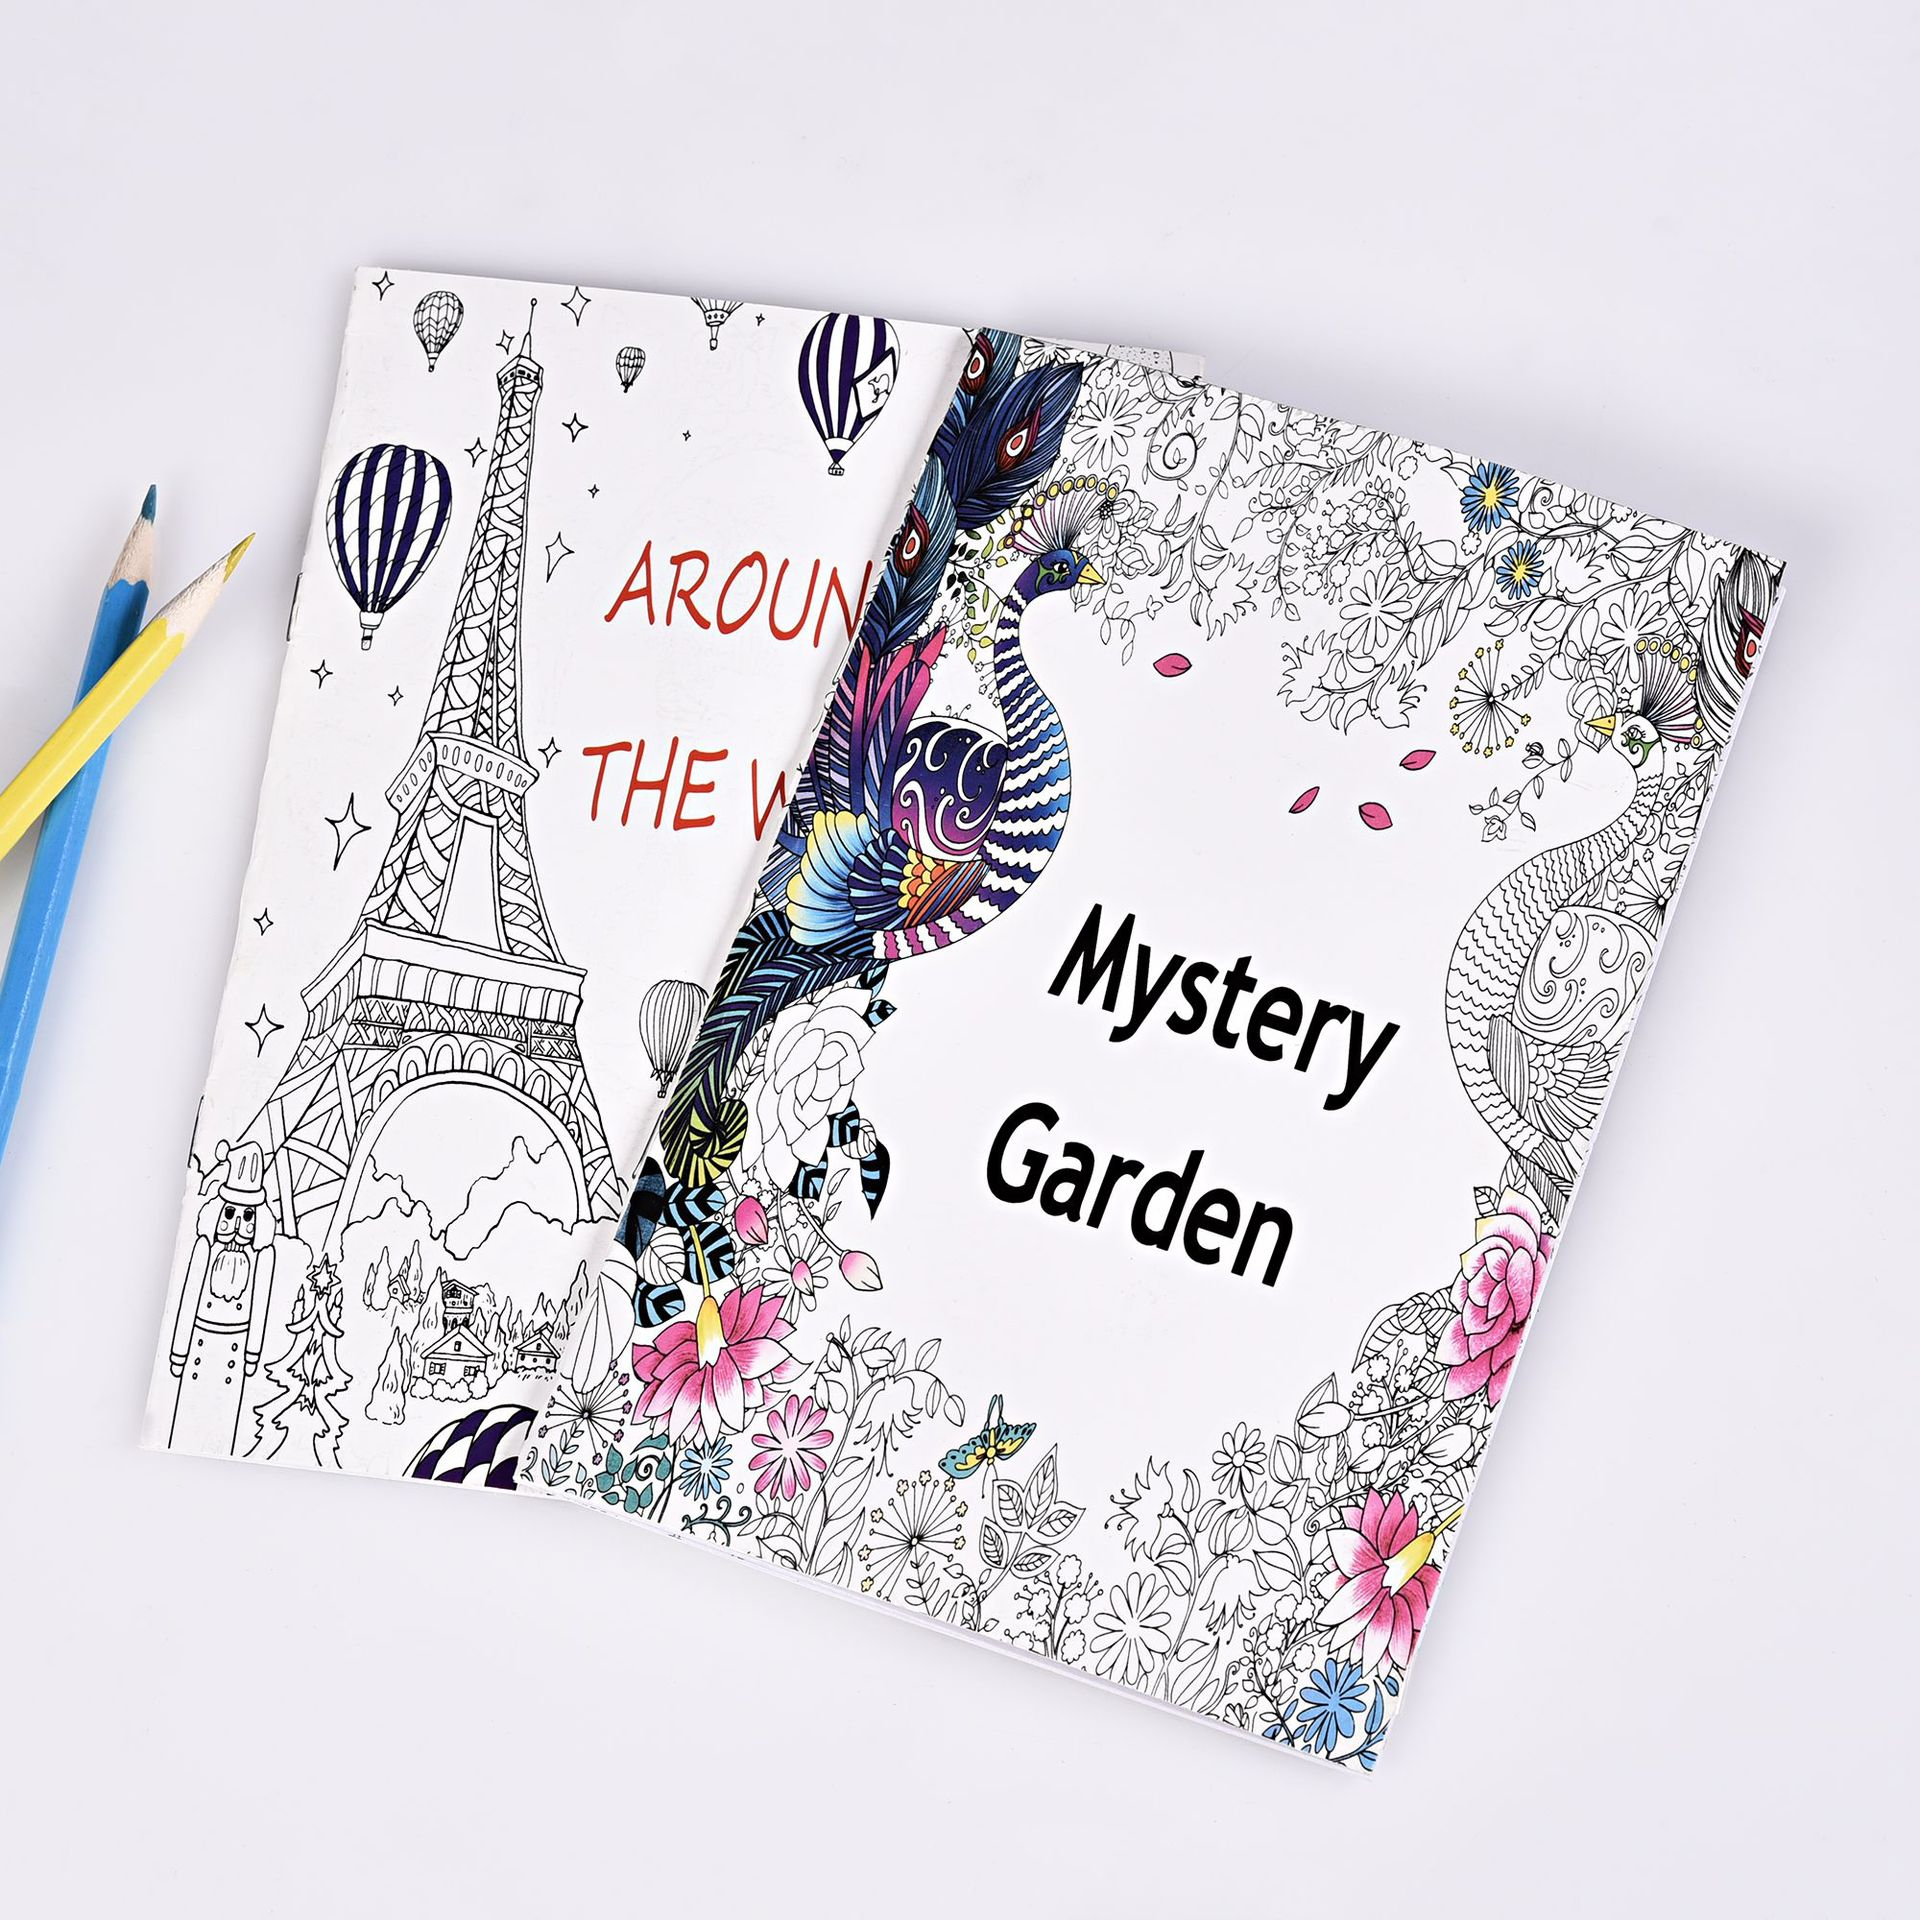 16 Pages Mystery Garden And Around The World Coloring Book Kids Adult  English Edition Drawing Book 21*14cm